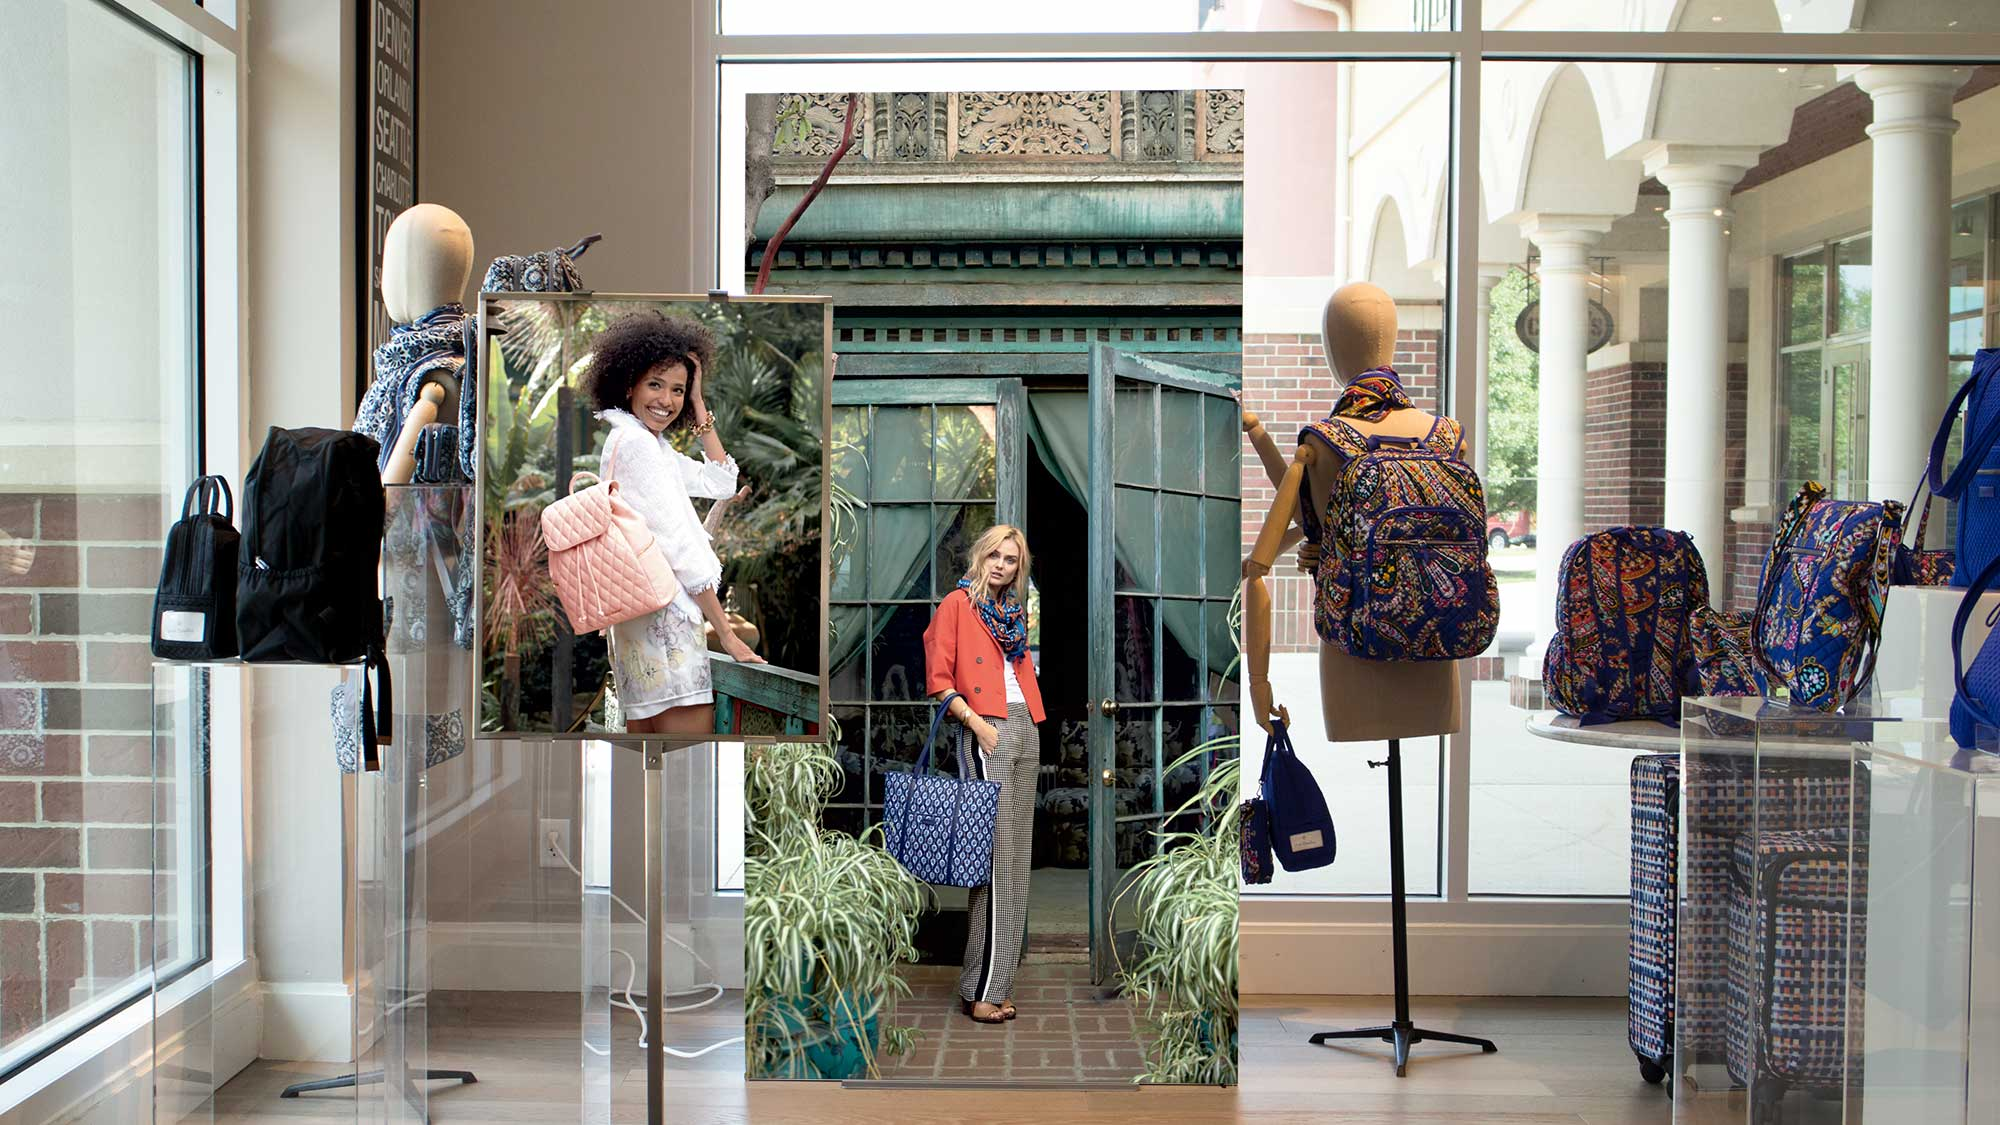 Vera Bradley Store Interior with Marketing